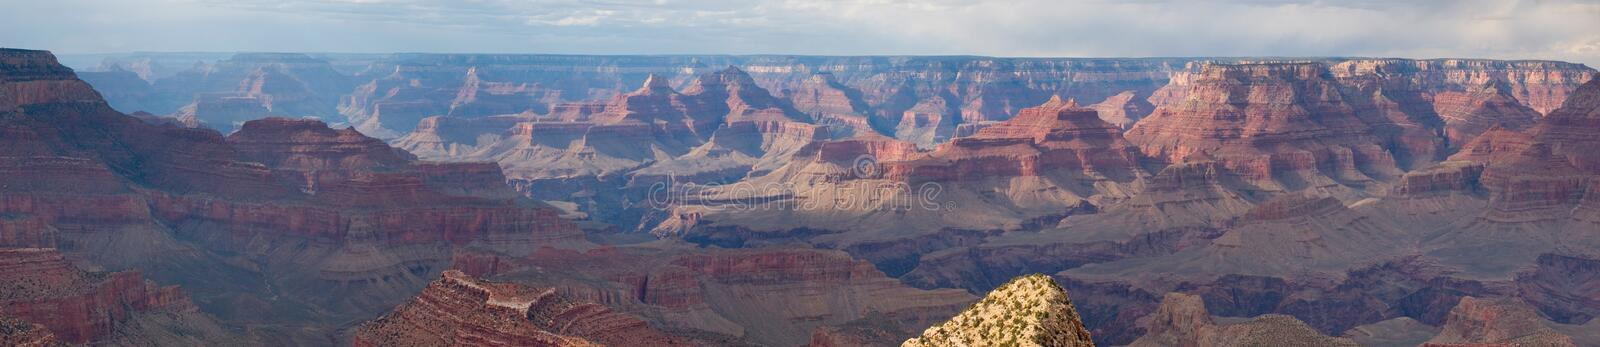 Grand Canyon NP panorama royalty free stock images